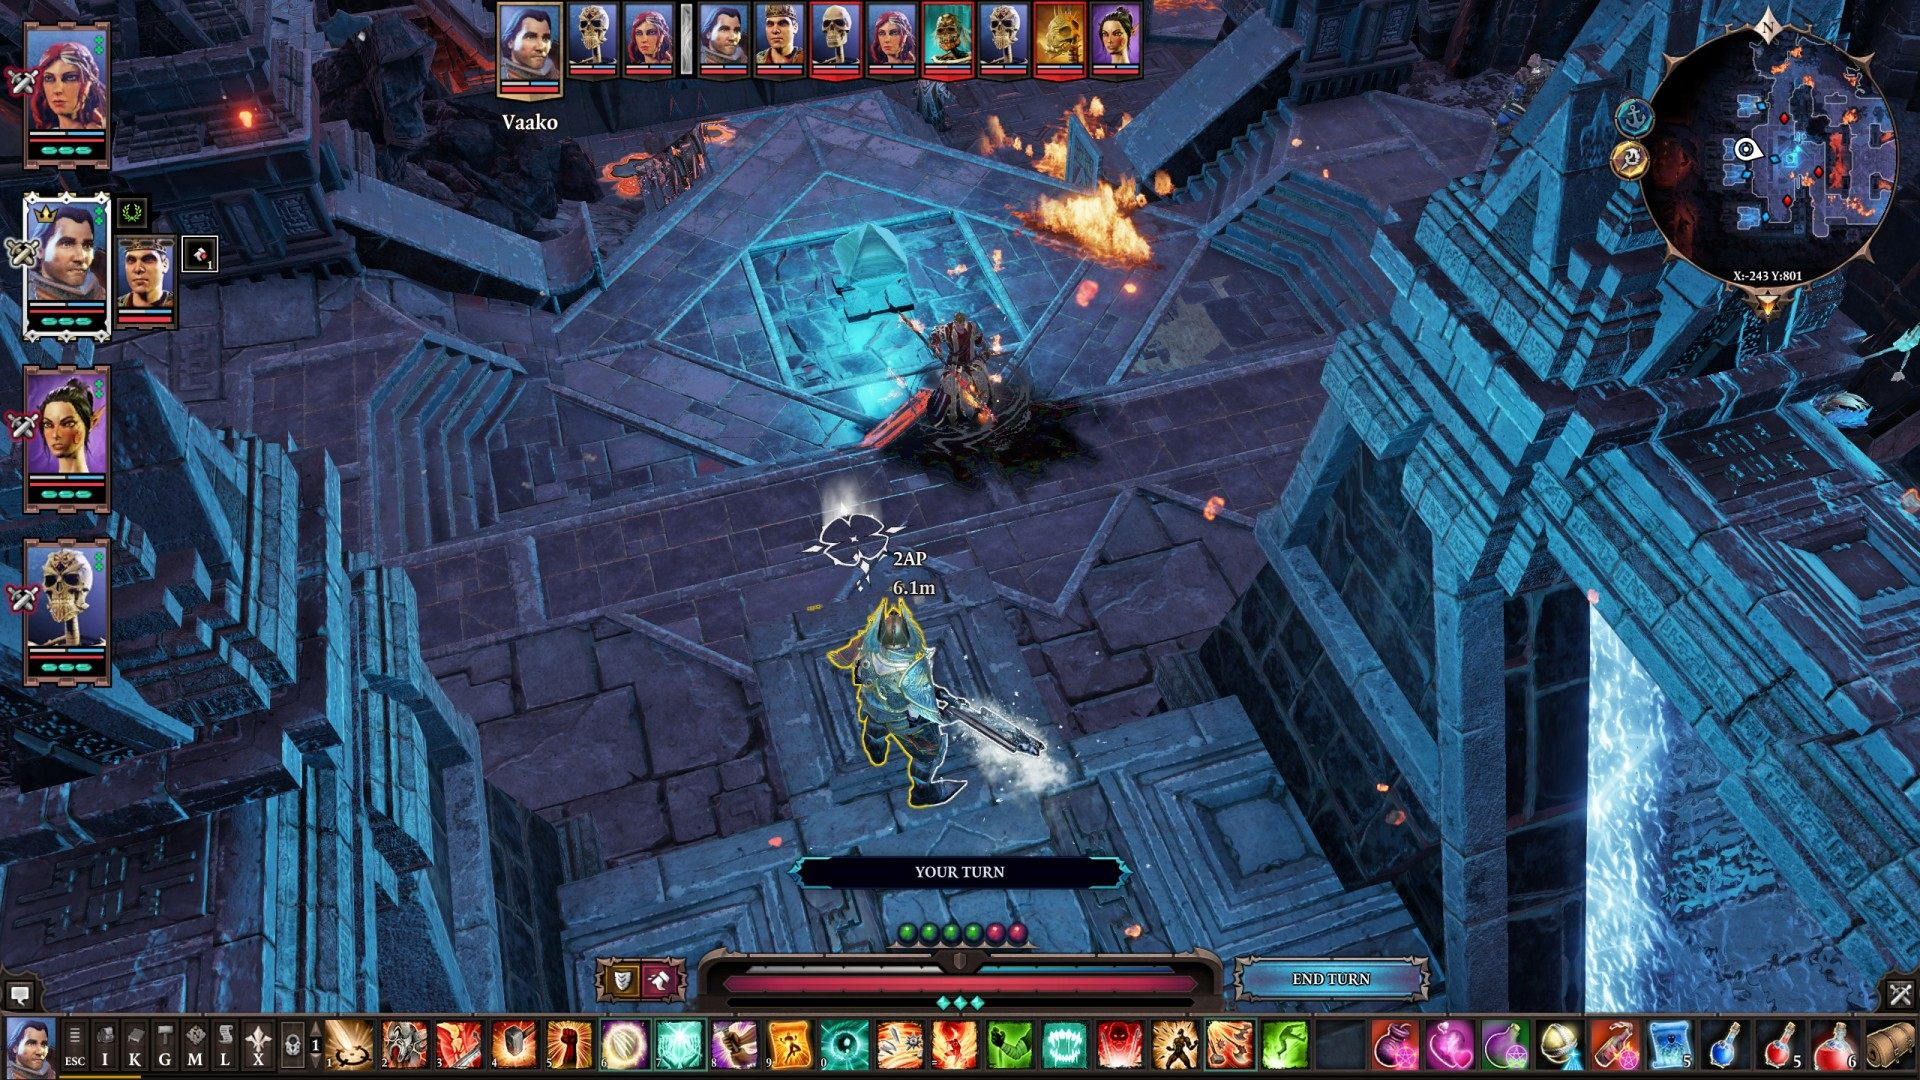 The Arena of the One, Divinity: Original Sin 2 Quest